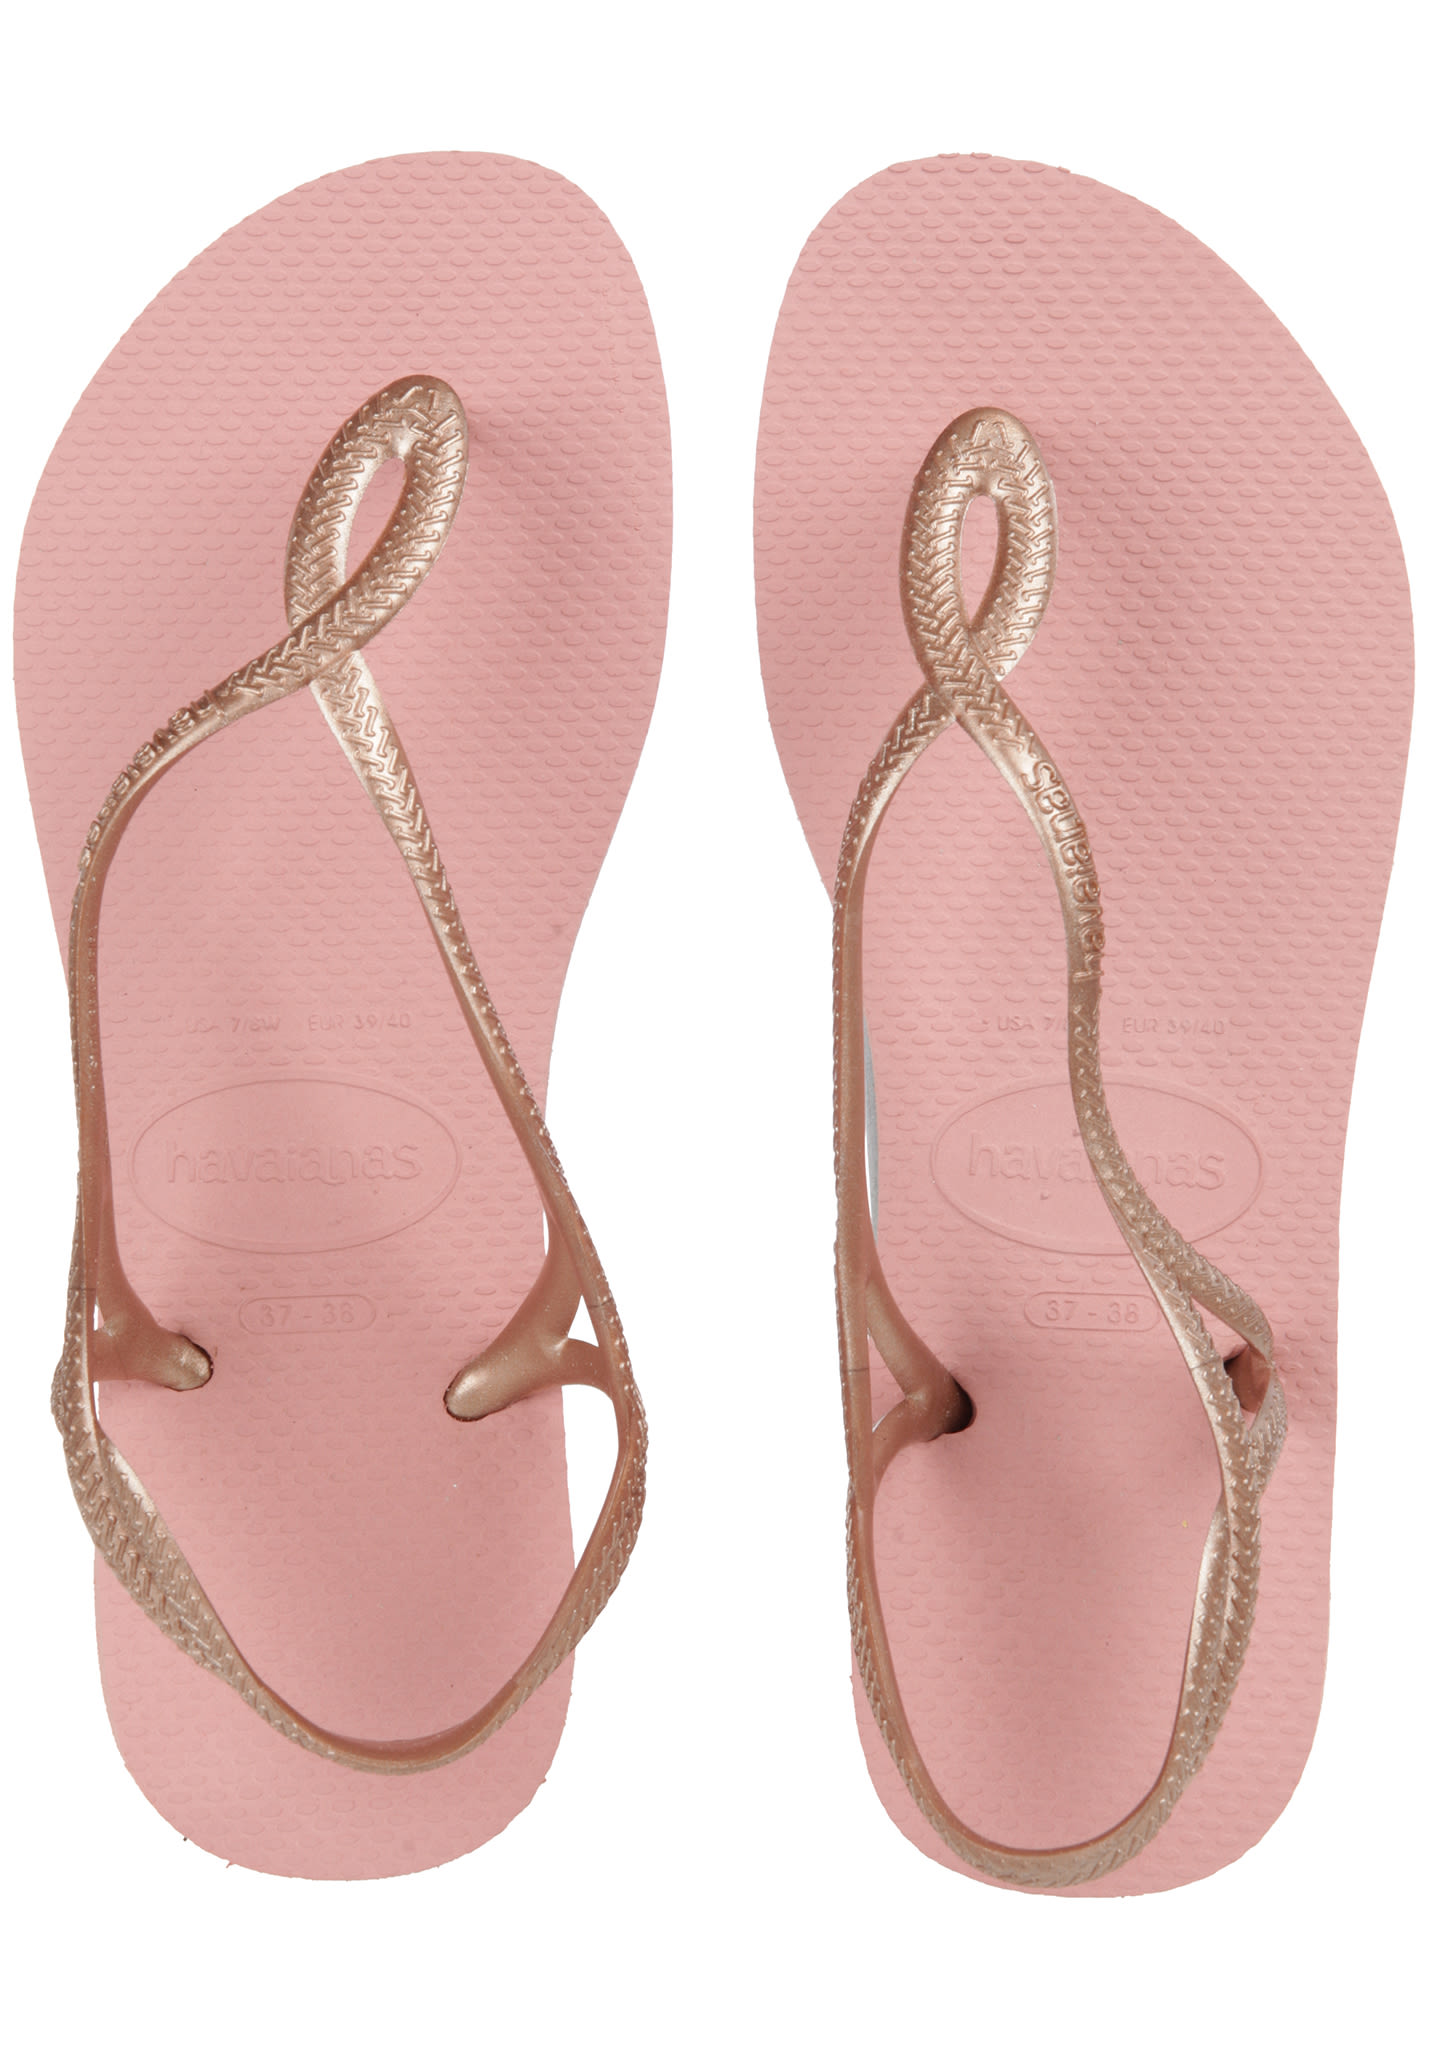 recognized brands new specials many styles HAVAIANAS Luna - Sandals for Women - Pink